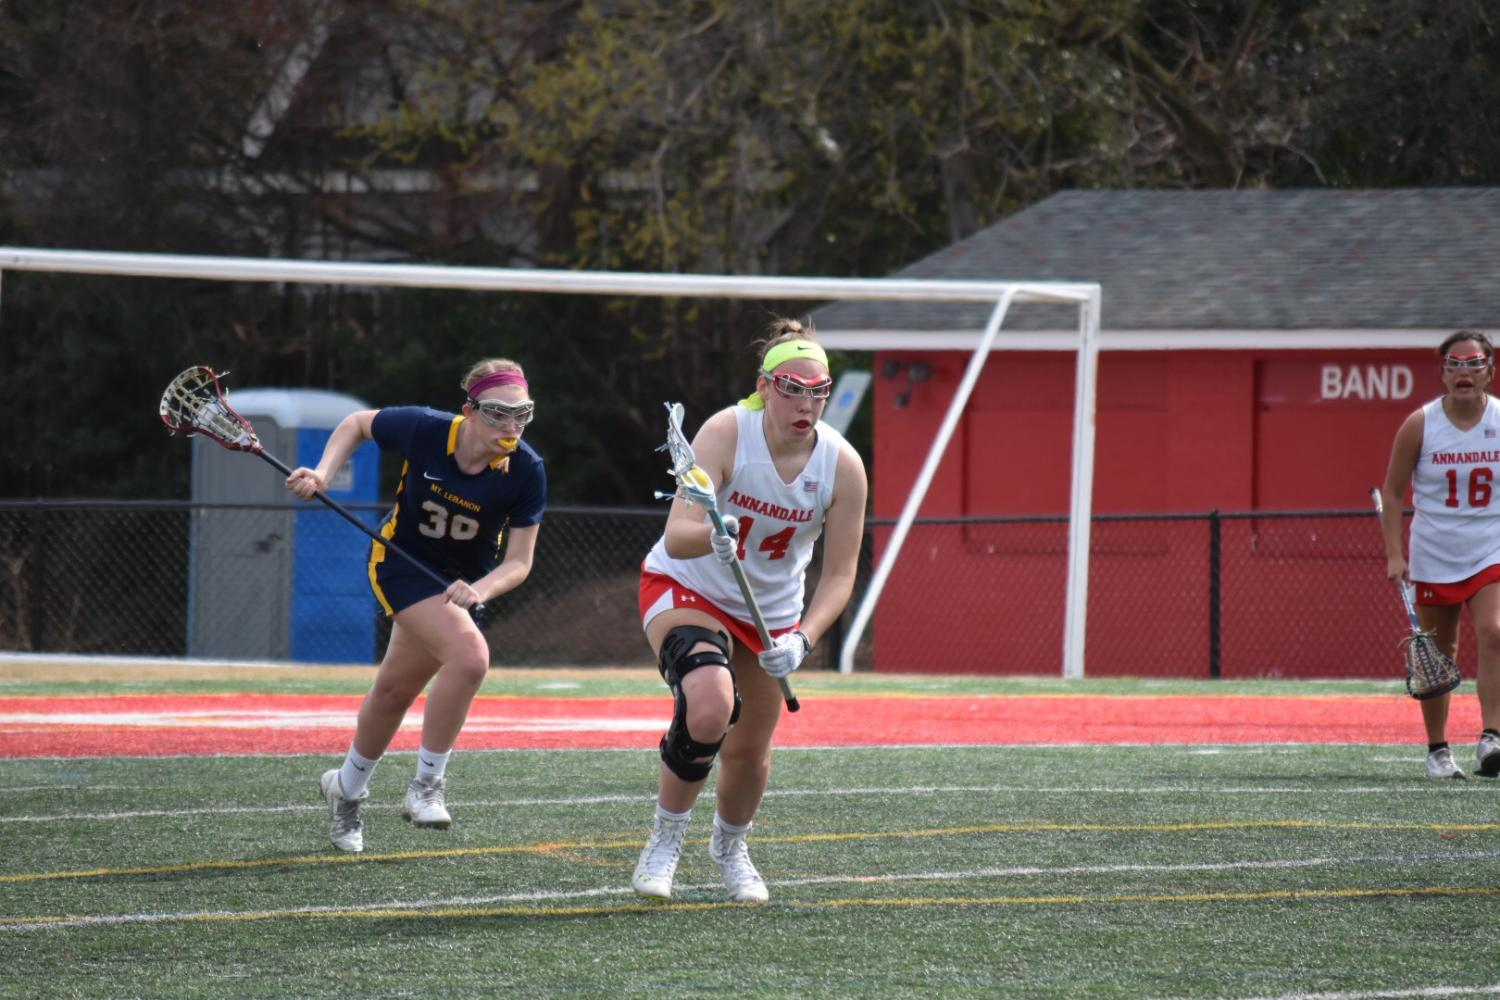 Junior Caitlyn Schwartz runs with the ball against Mt. Lebanon (PA) on March 25. The Atoms lost 11-5.